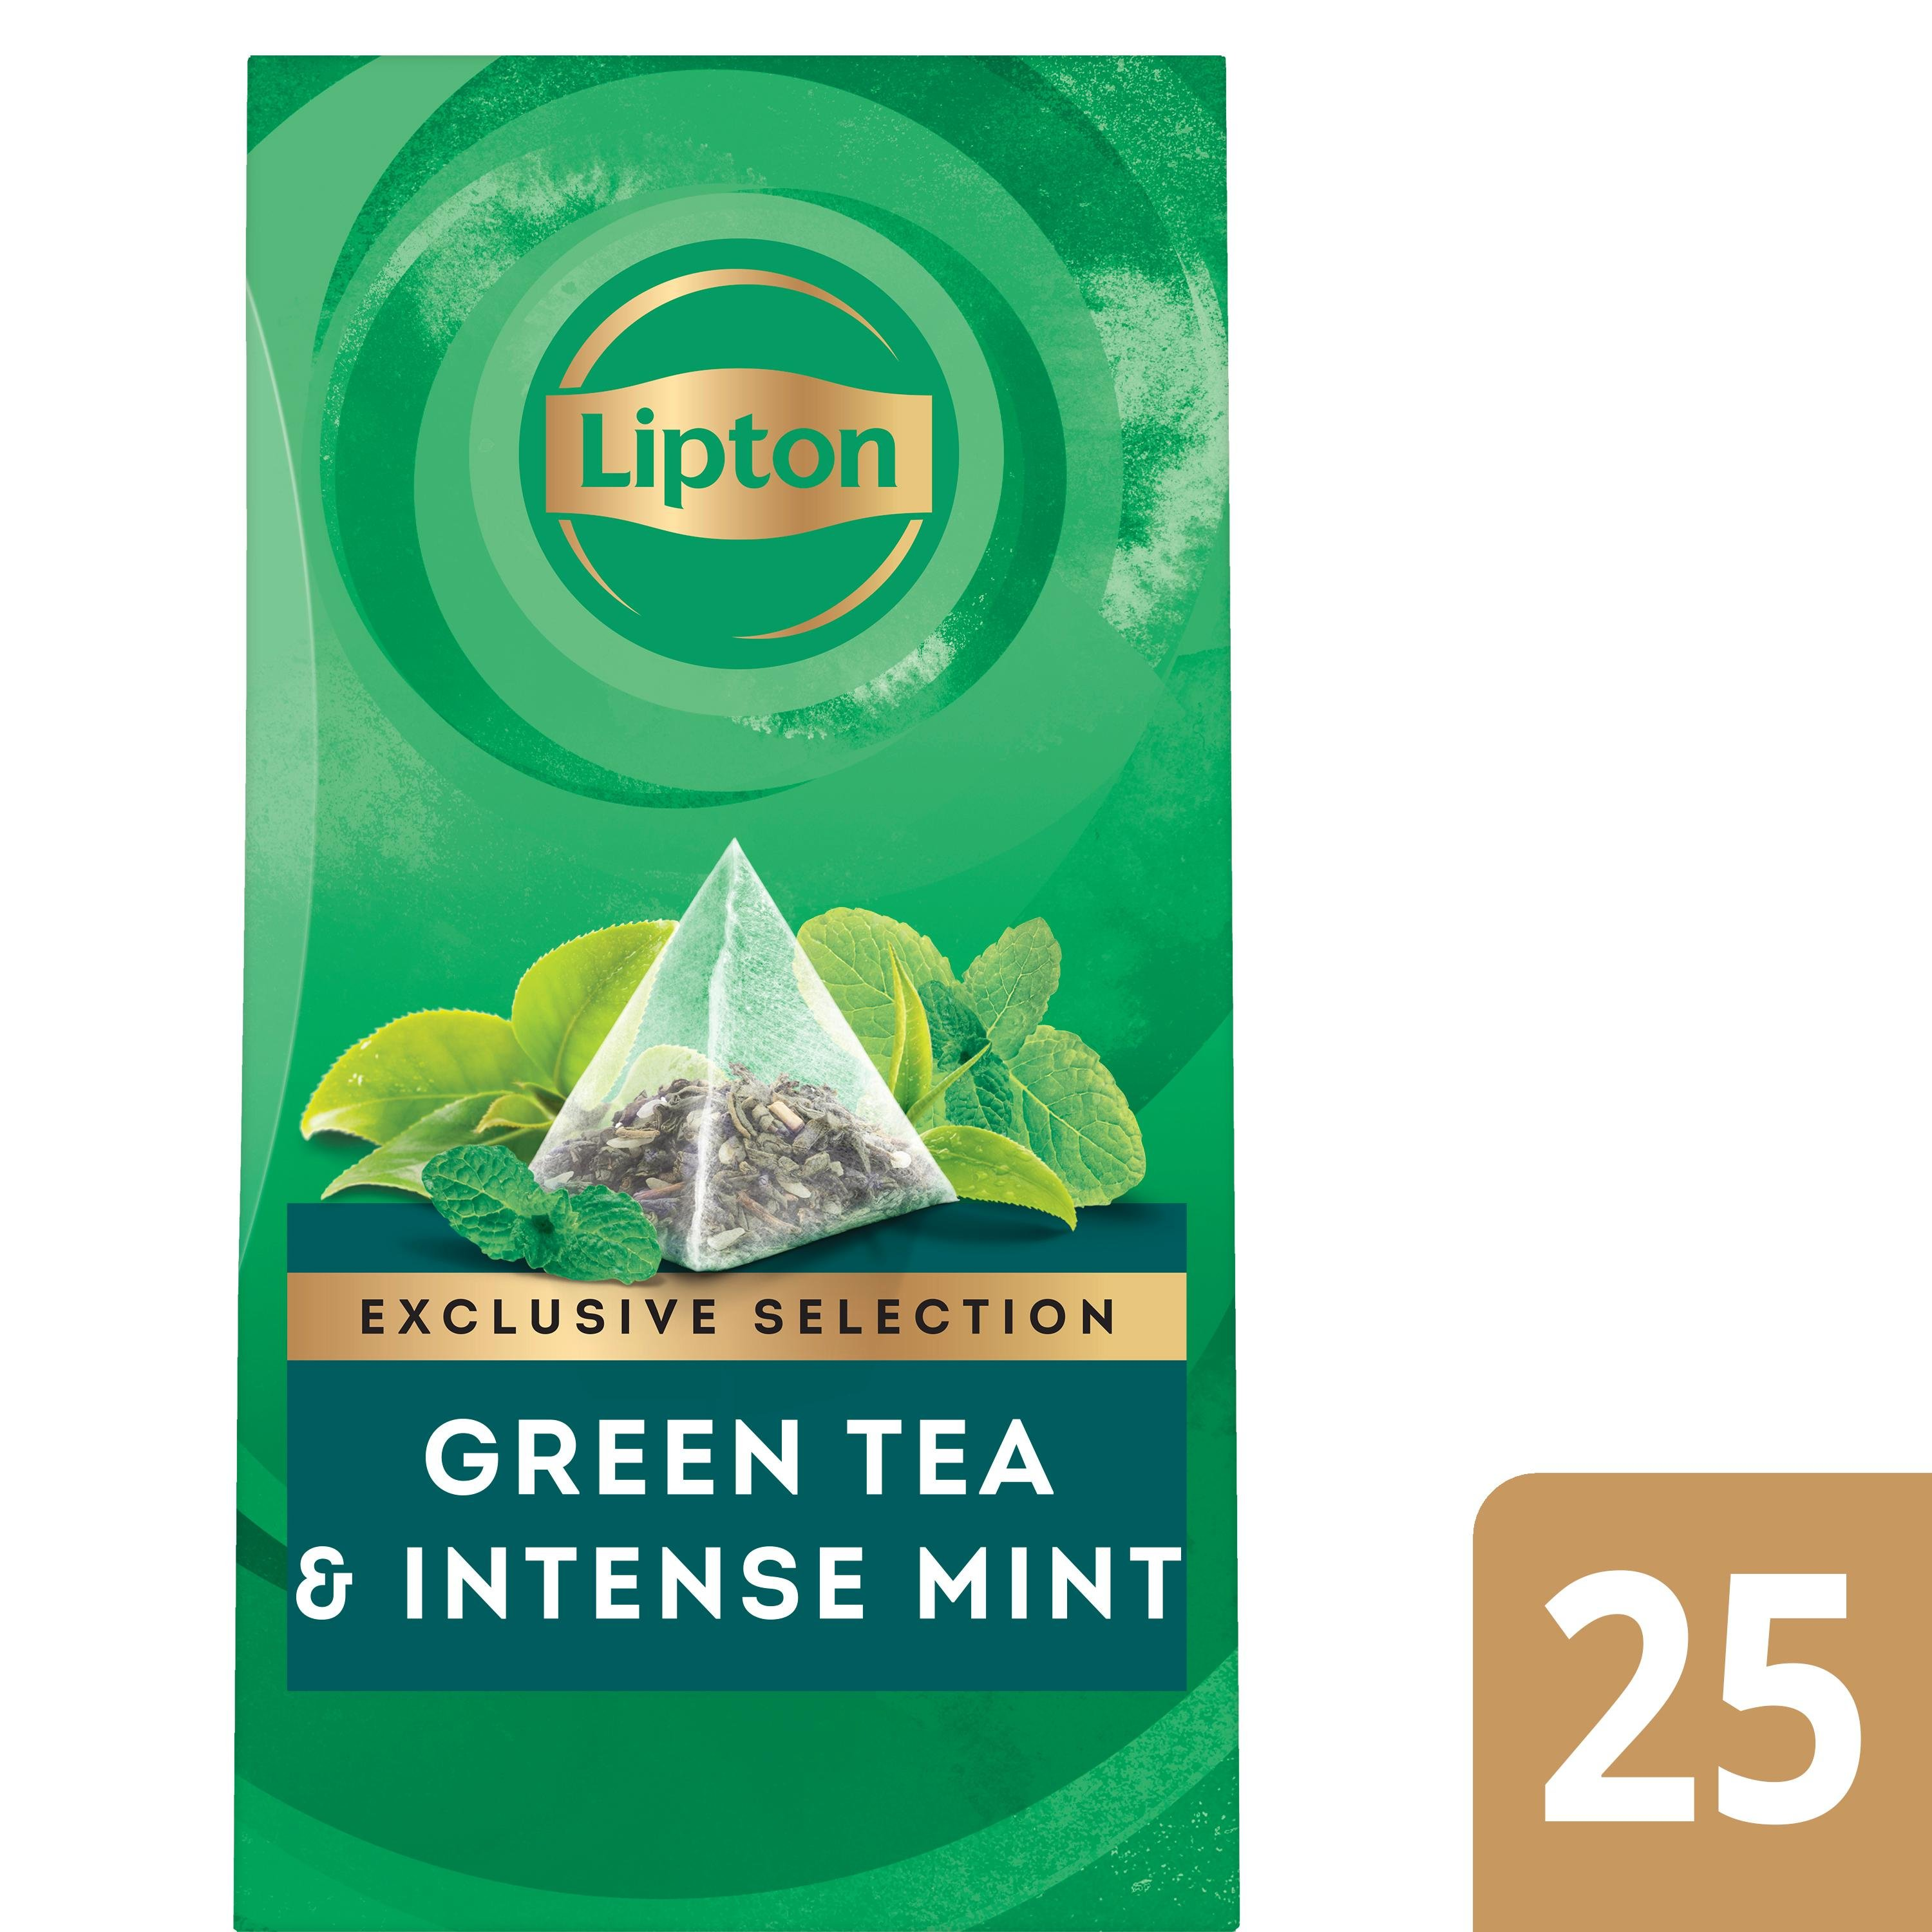 Lipton Exclusive Selection Green Tea & Intense Mint